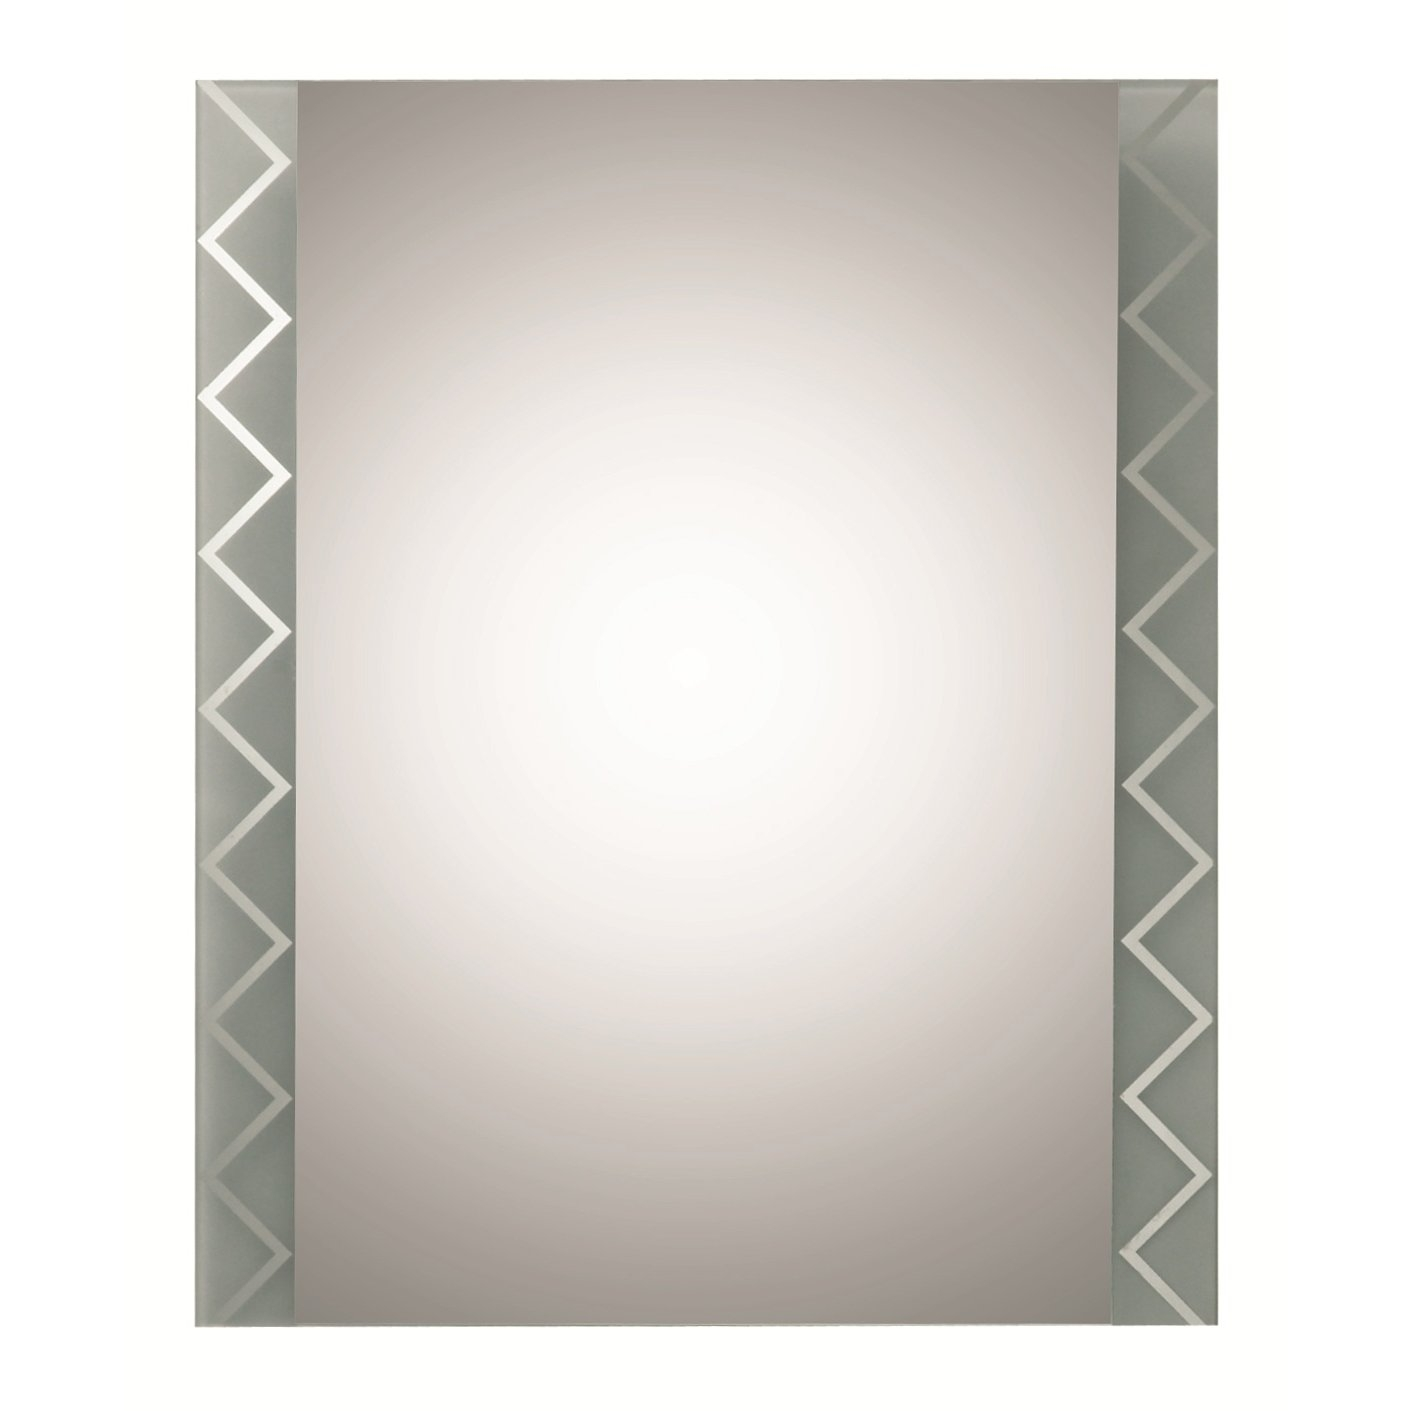 Decor Wonderland Frameless Butterfly Wall Mirror Reviews Wayfair With Butterfly Wall Mirror (Image 7 of 15)